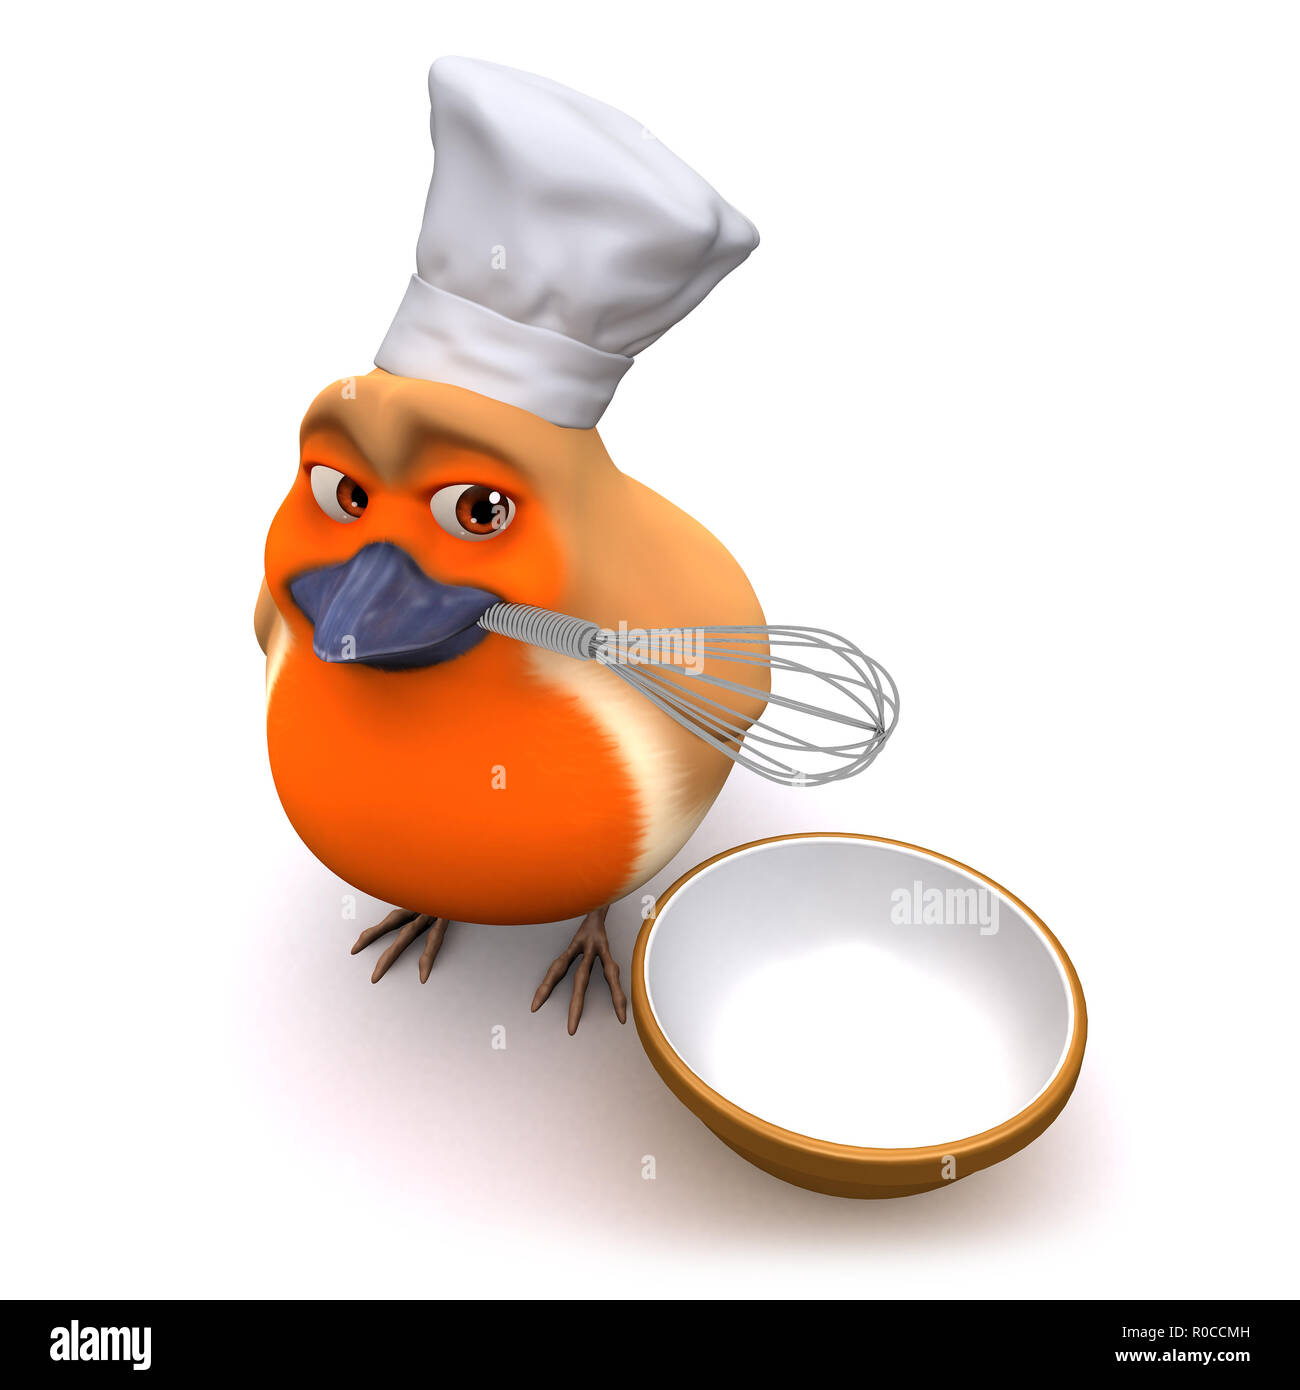 3d render of a cartoon robin bird making a cake with whisk and bowl Stock Photo